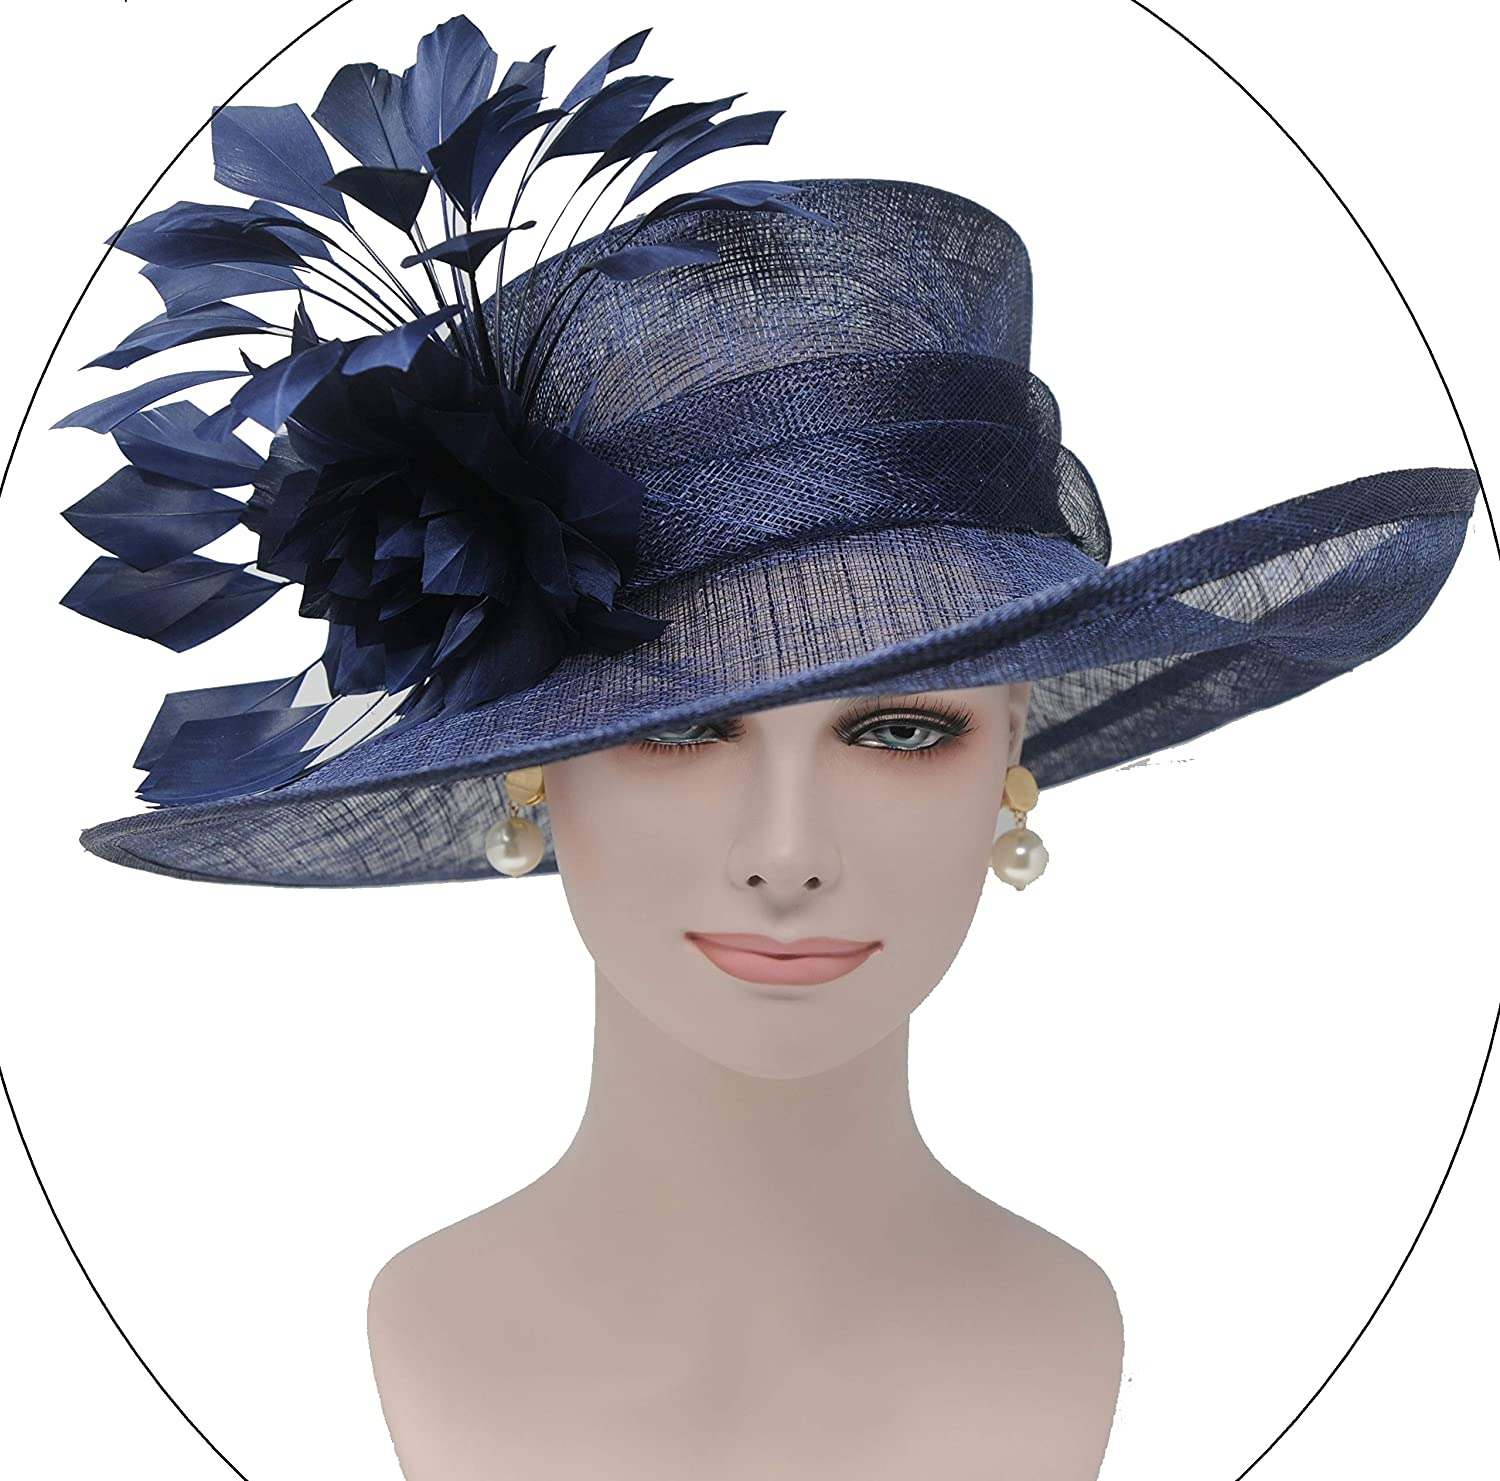 014ca4c09 ray&danile Wide Brim Sinamay hat with Feather Flowers, Navy Blue ...